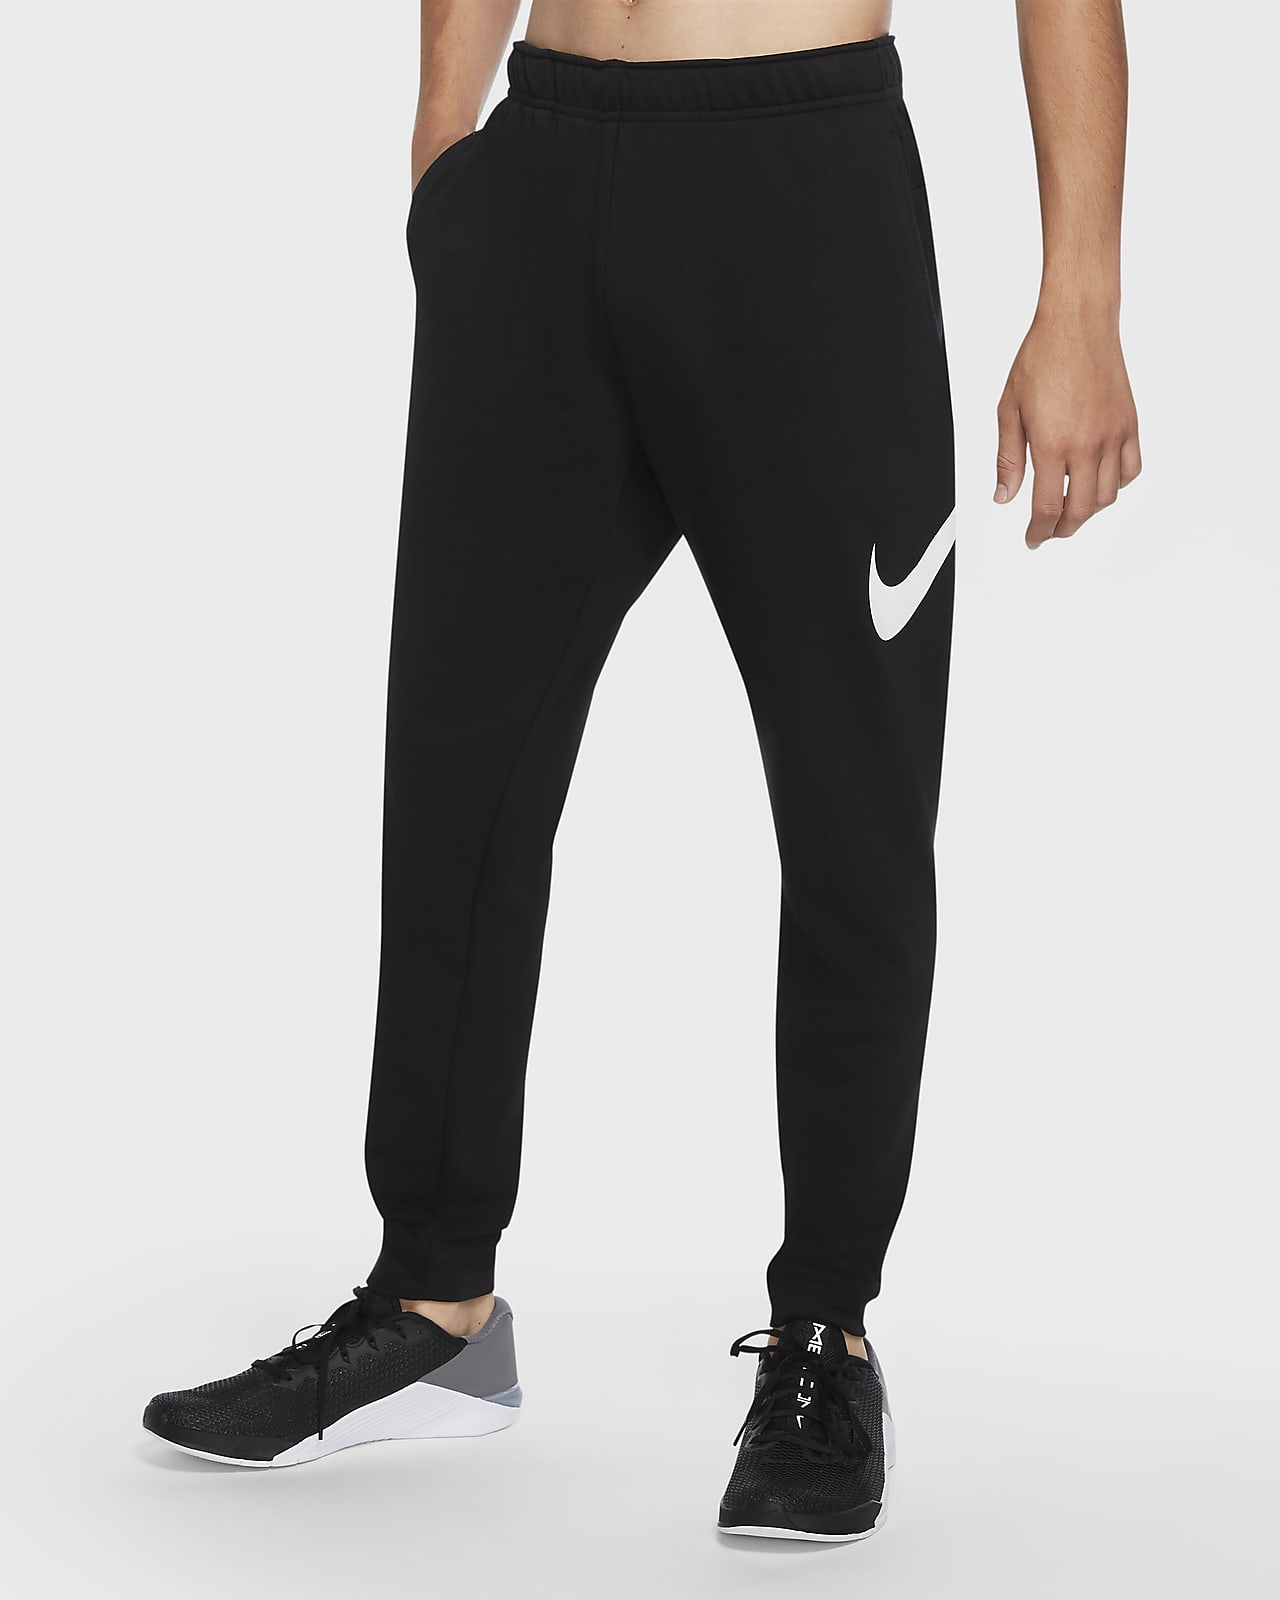 Nike Dri-FIT Men's Tapered Training Trousers